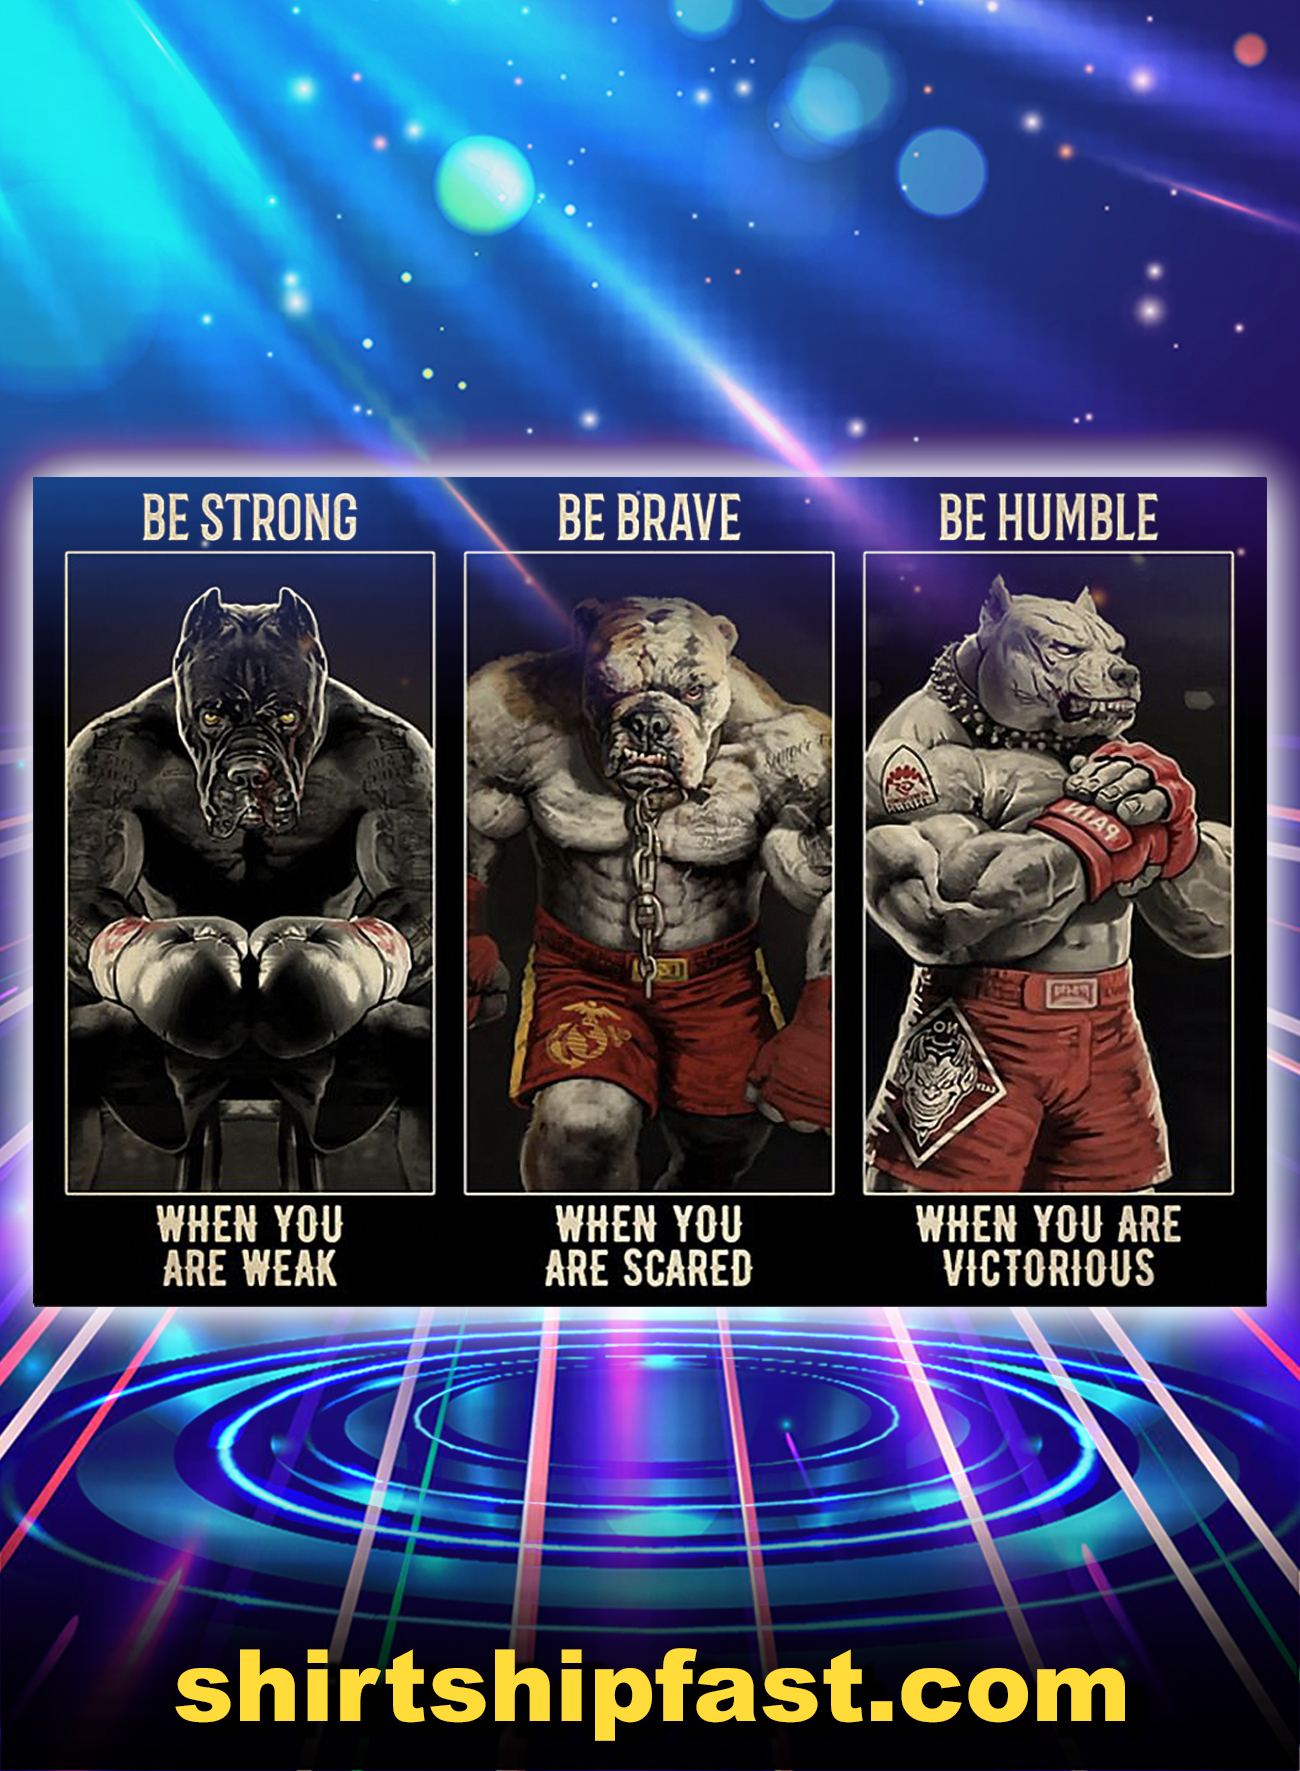 Poster Pitbull boxing be strong be brave be humble